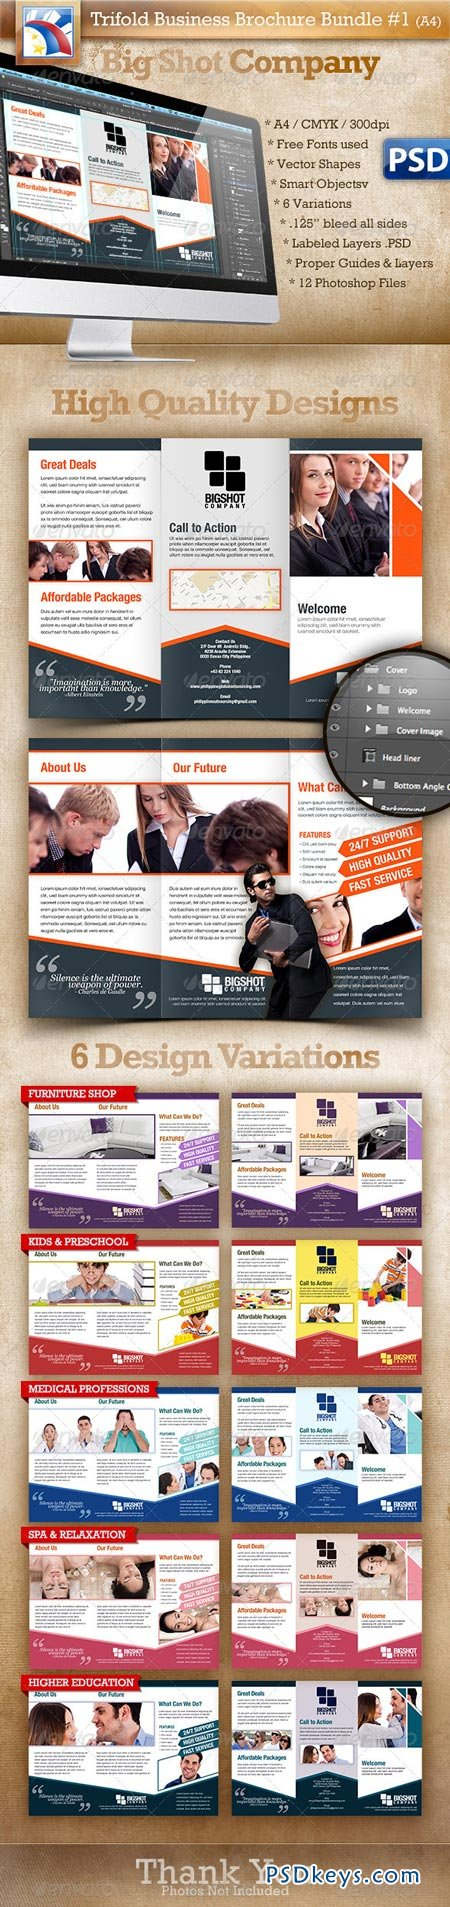 brochure photoshop template - a4 trifold brochure template psd 6 variations 1 2721119